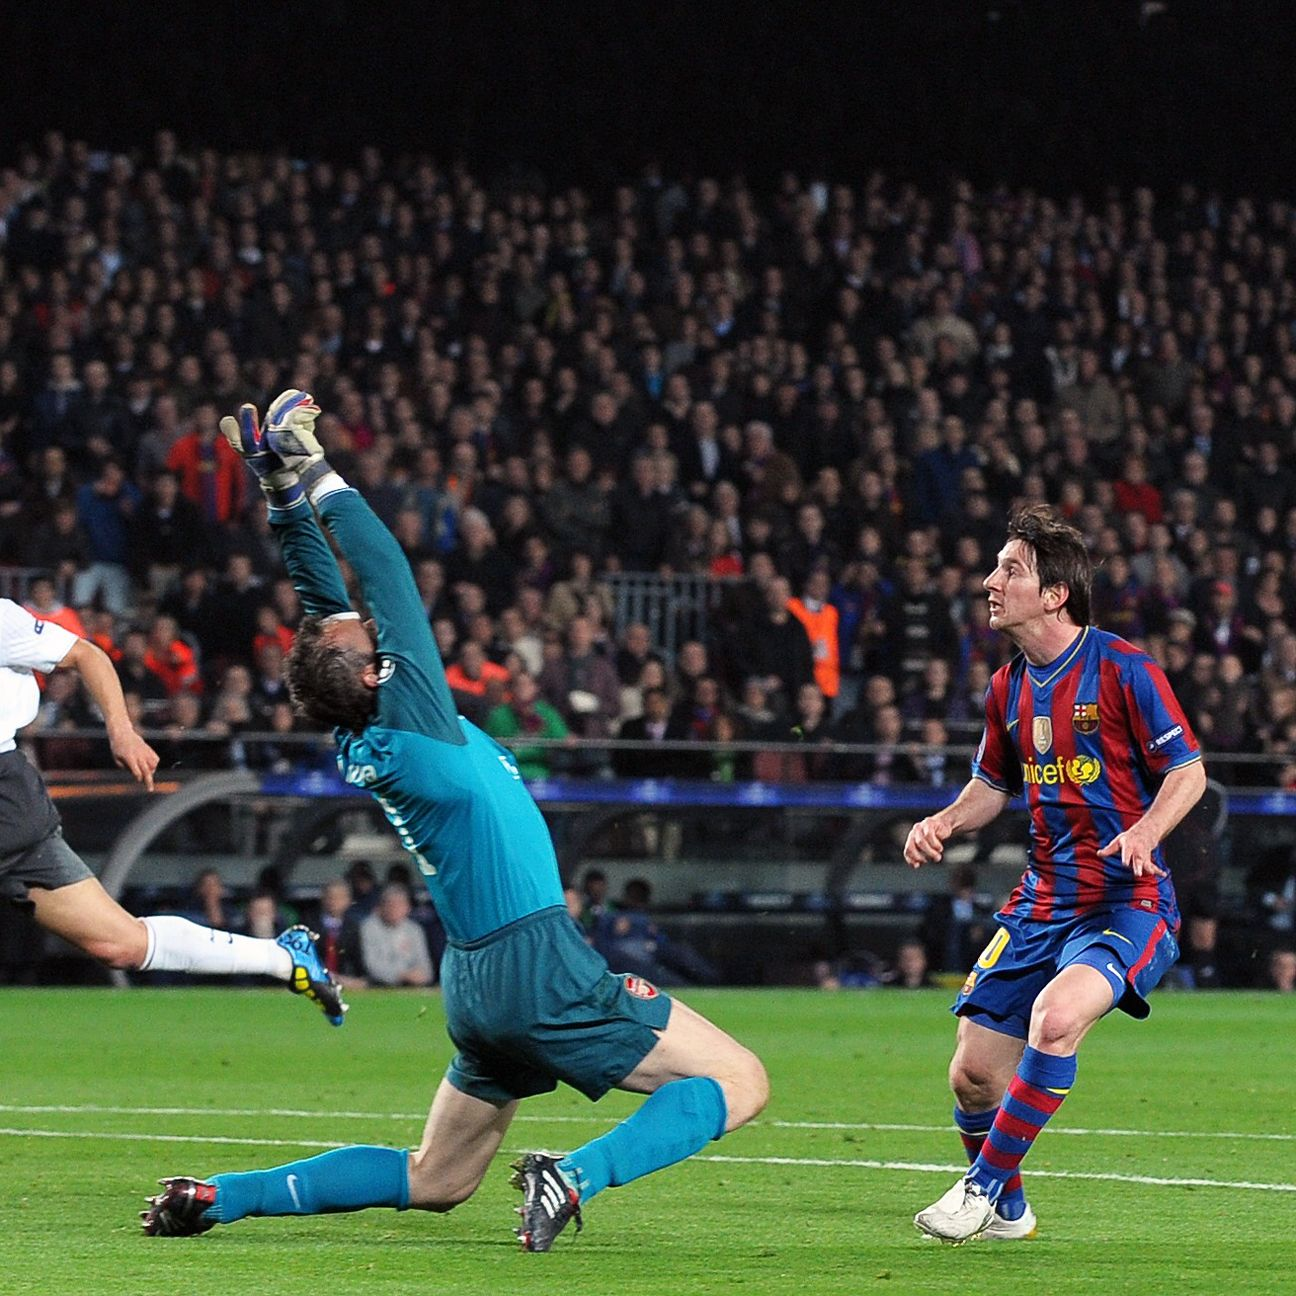 Lionel Messi chips Manuel Almunia for another memorable goal.